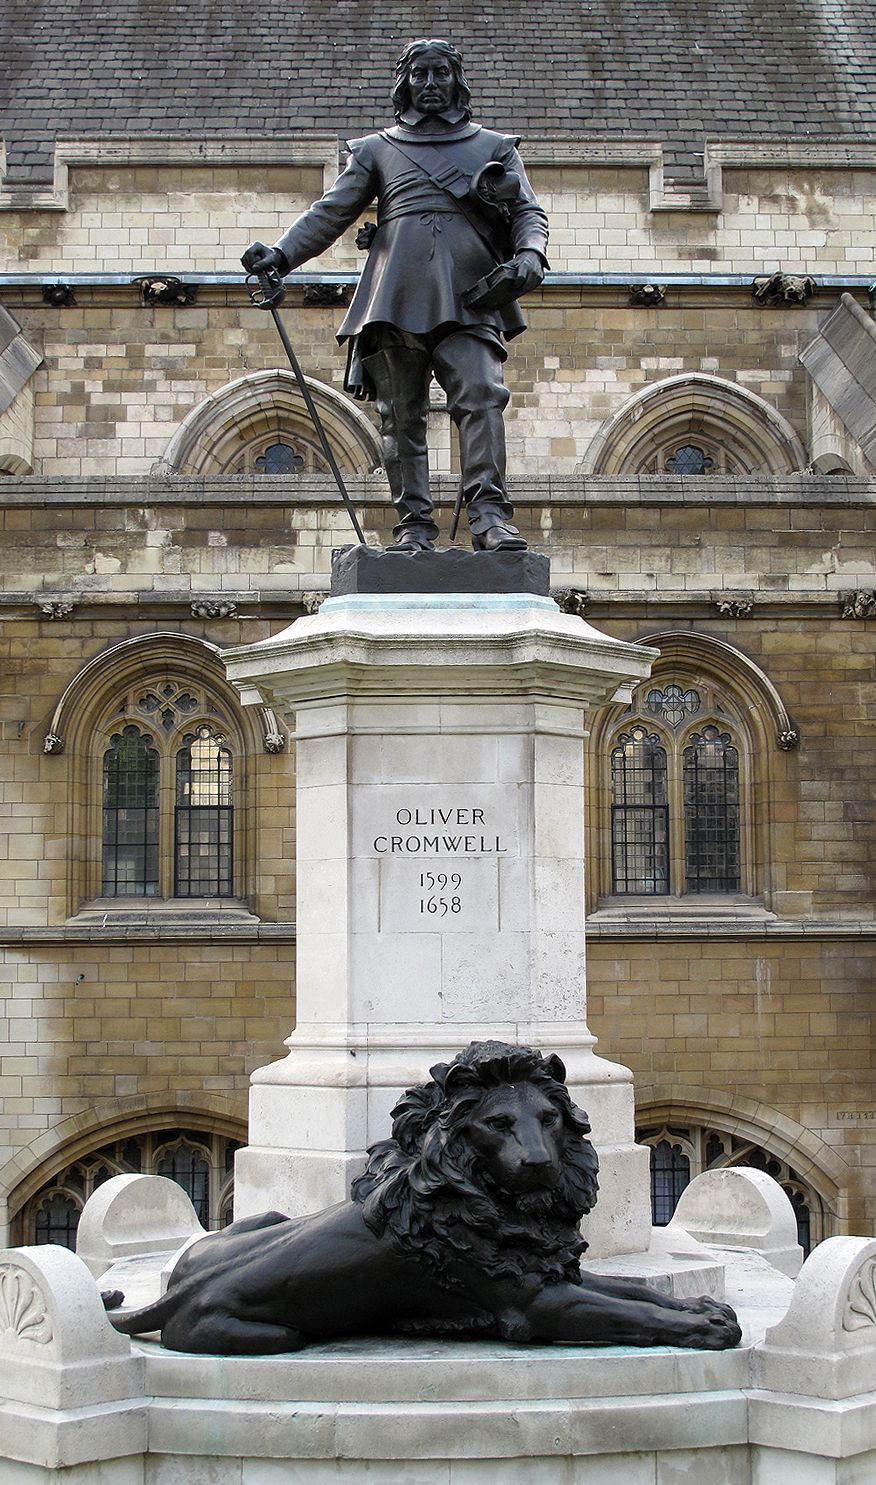 Statue of Oliver Cromwell outside the UK House of Commons